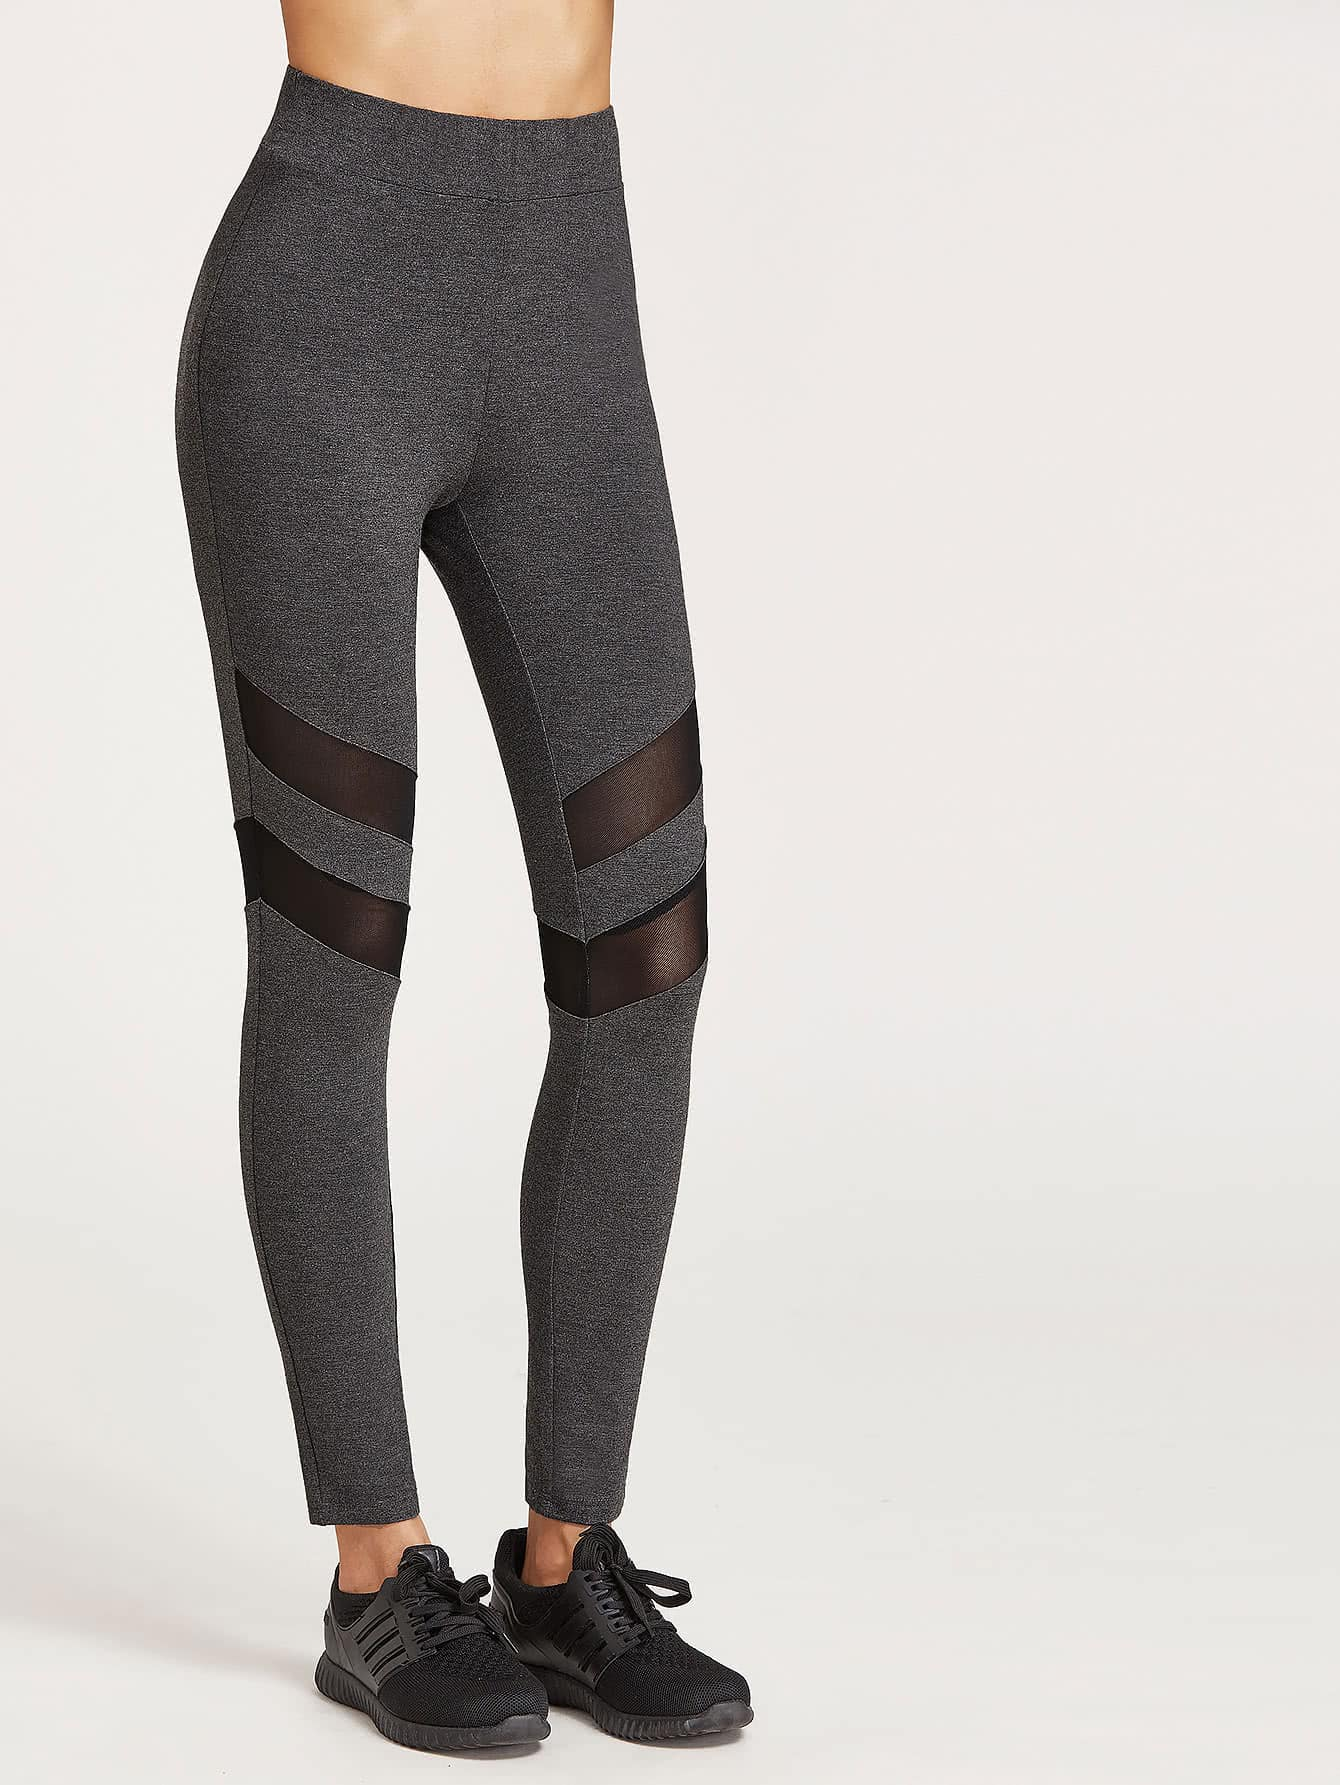 High Waist Leggings With Mesh Panel Detail leggings161228704